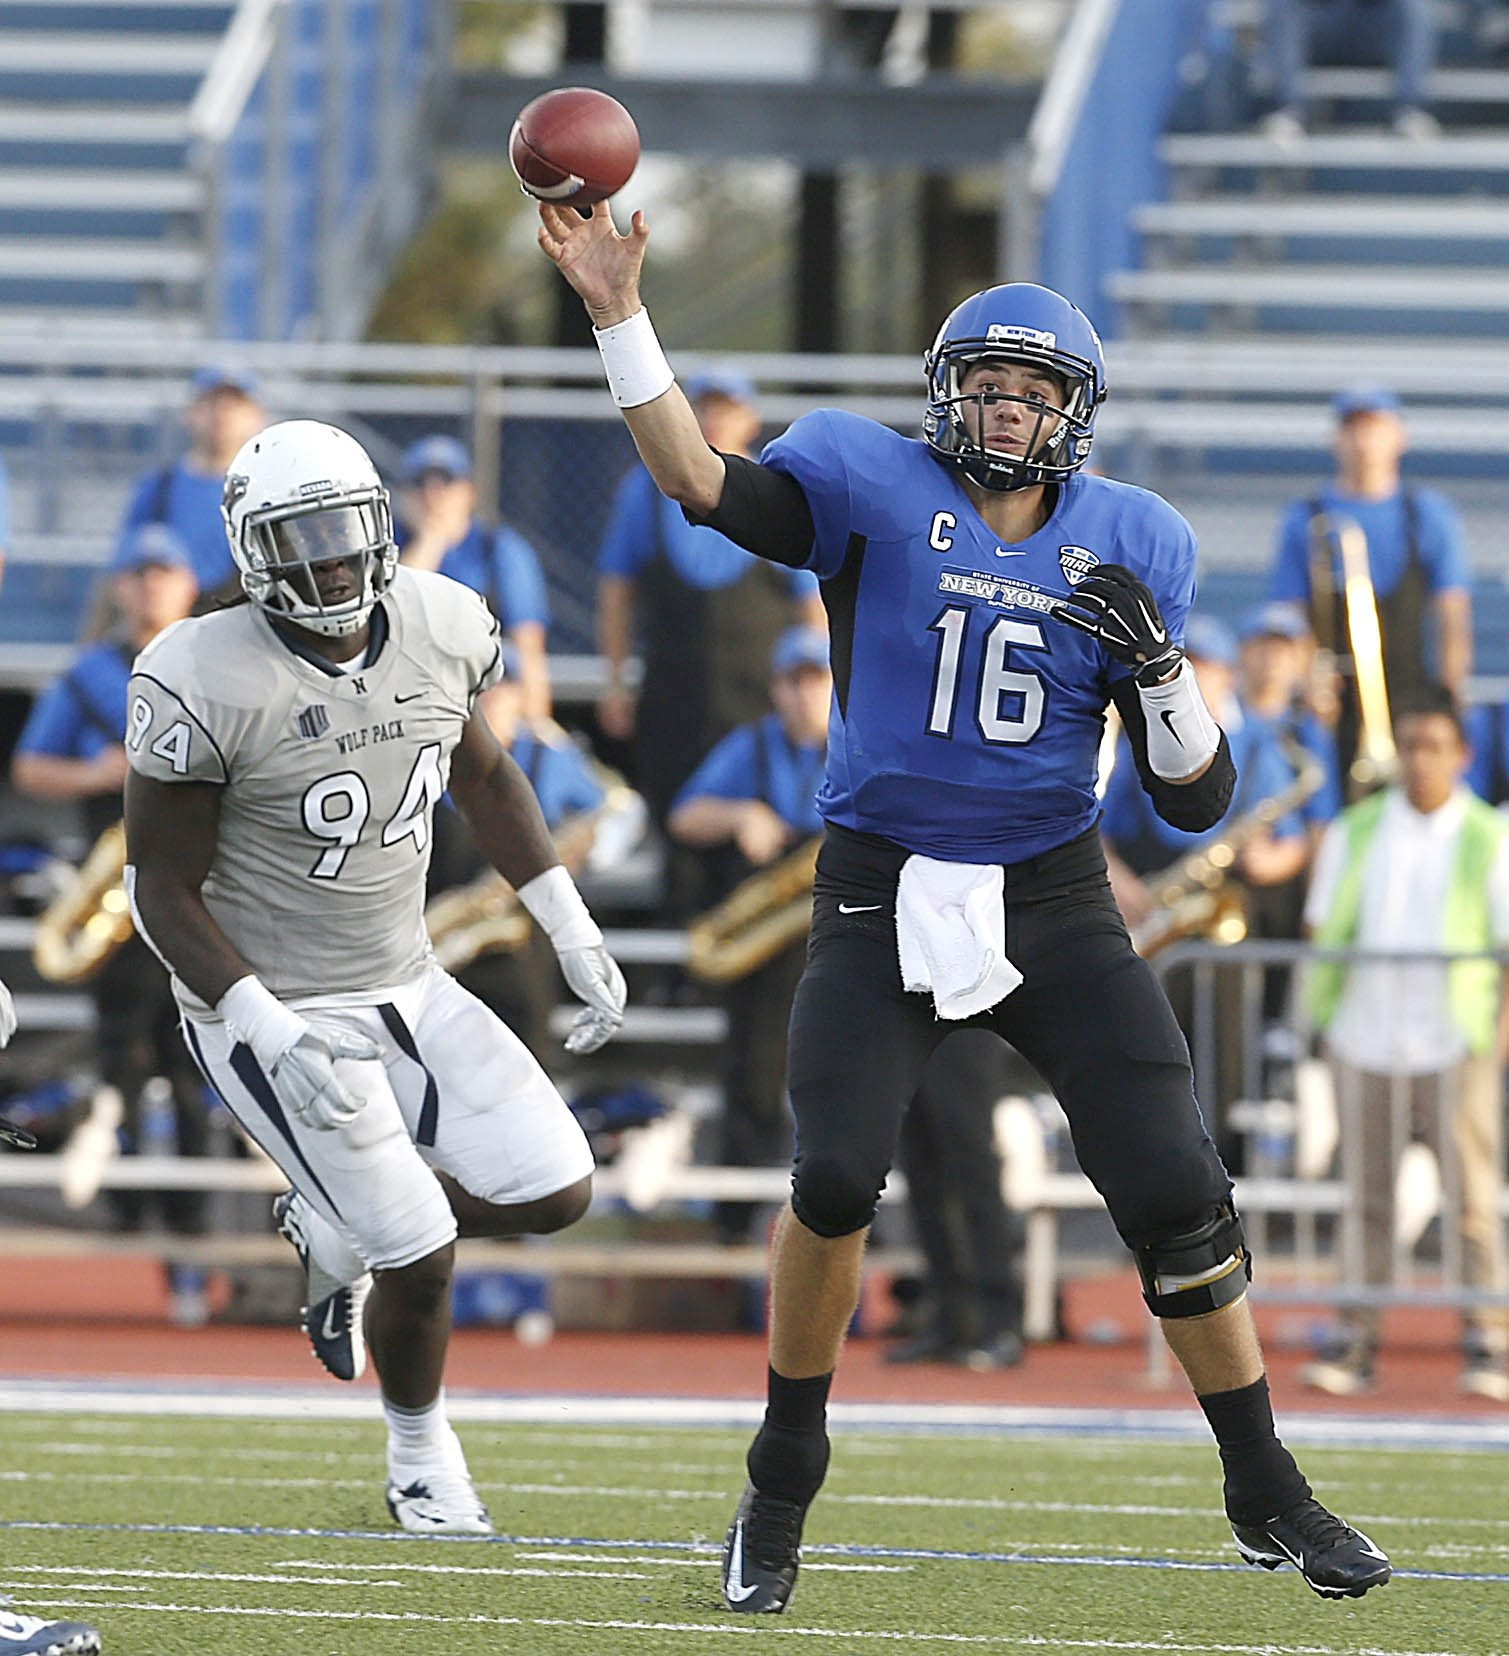 UB's Joe Licata threw for 338 yards and a pair of touchdowns but was often harassed in the first half by the likes of Nevada's Lenny Jones.